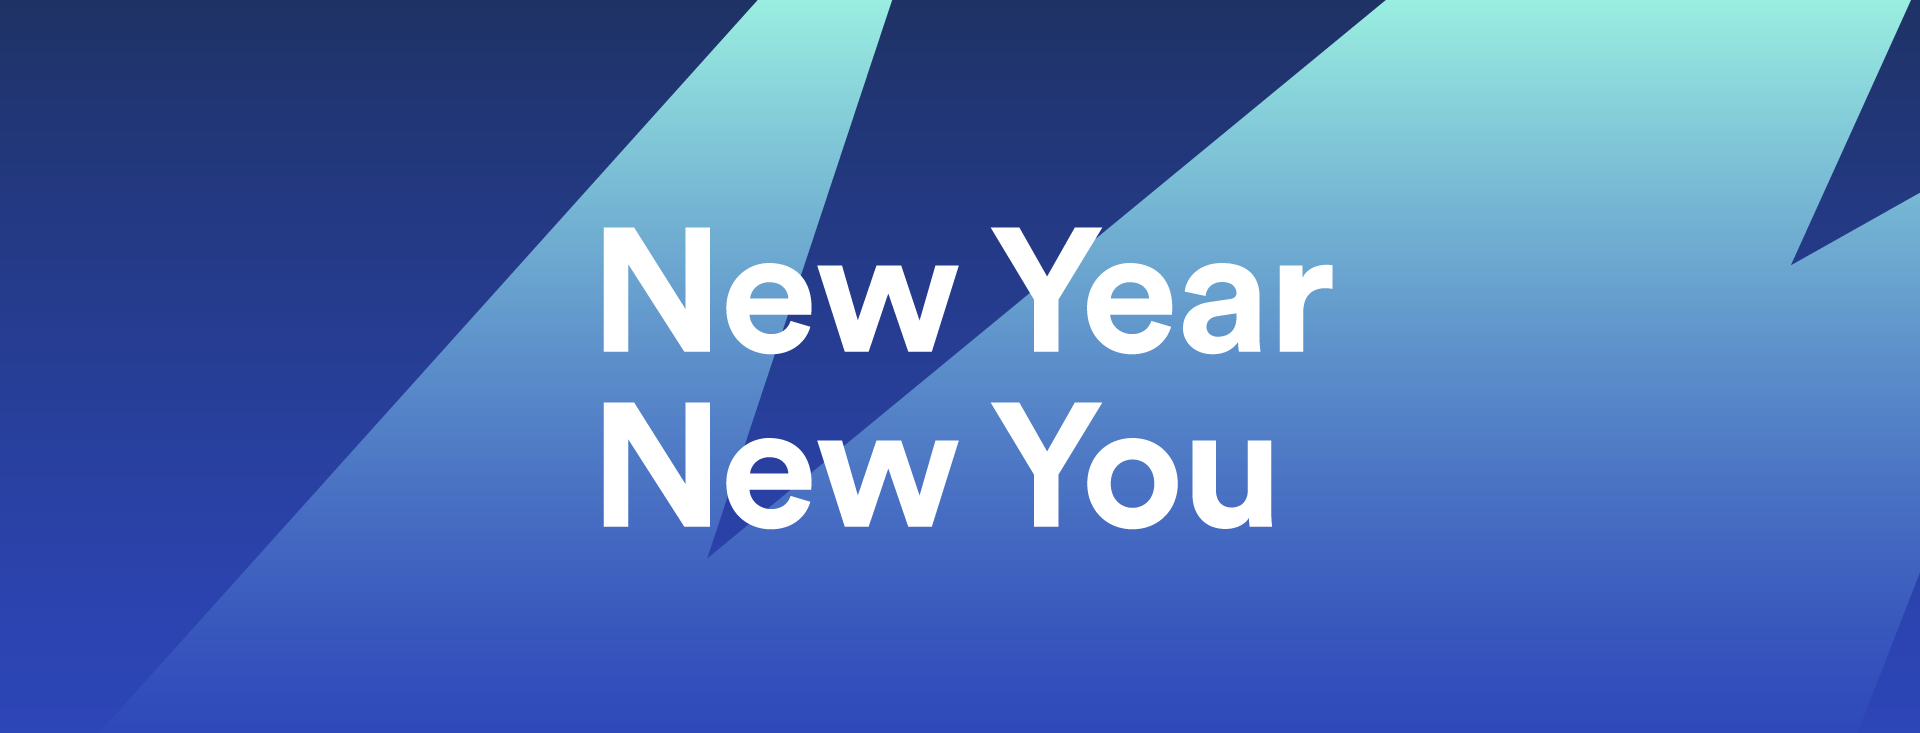 These Are Spotify S Top Workout Wellness Trends Plus 2020 Predictions To Help Kick Start Your Resolutions Spotify